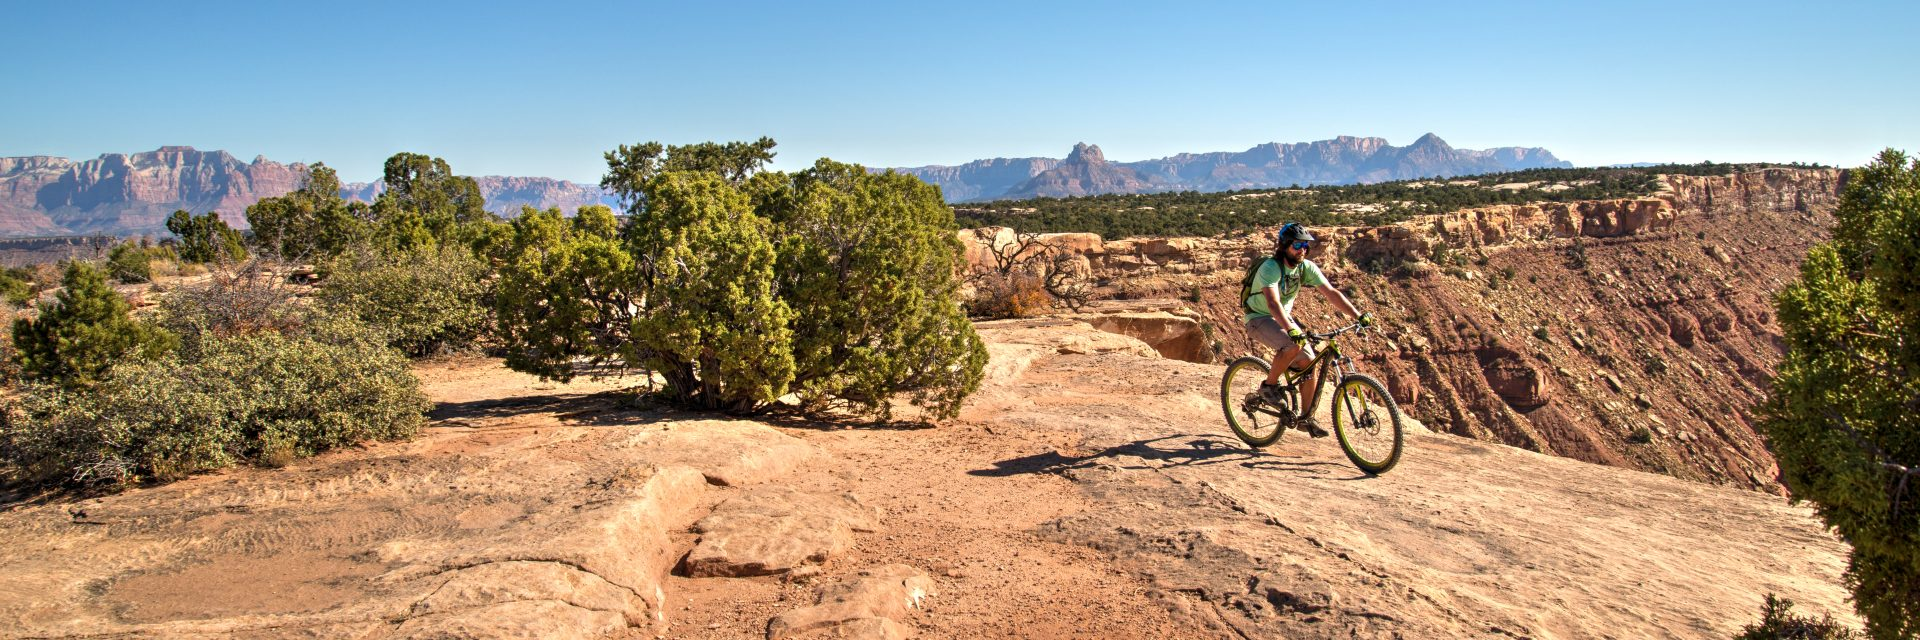 Biker arrives at the South Point on Gooseberry Mesa during guided mountain bike tour